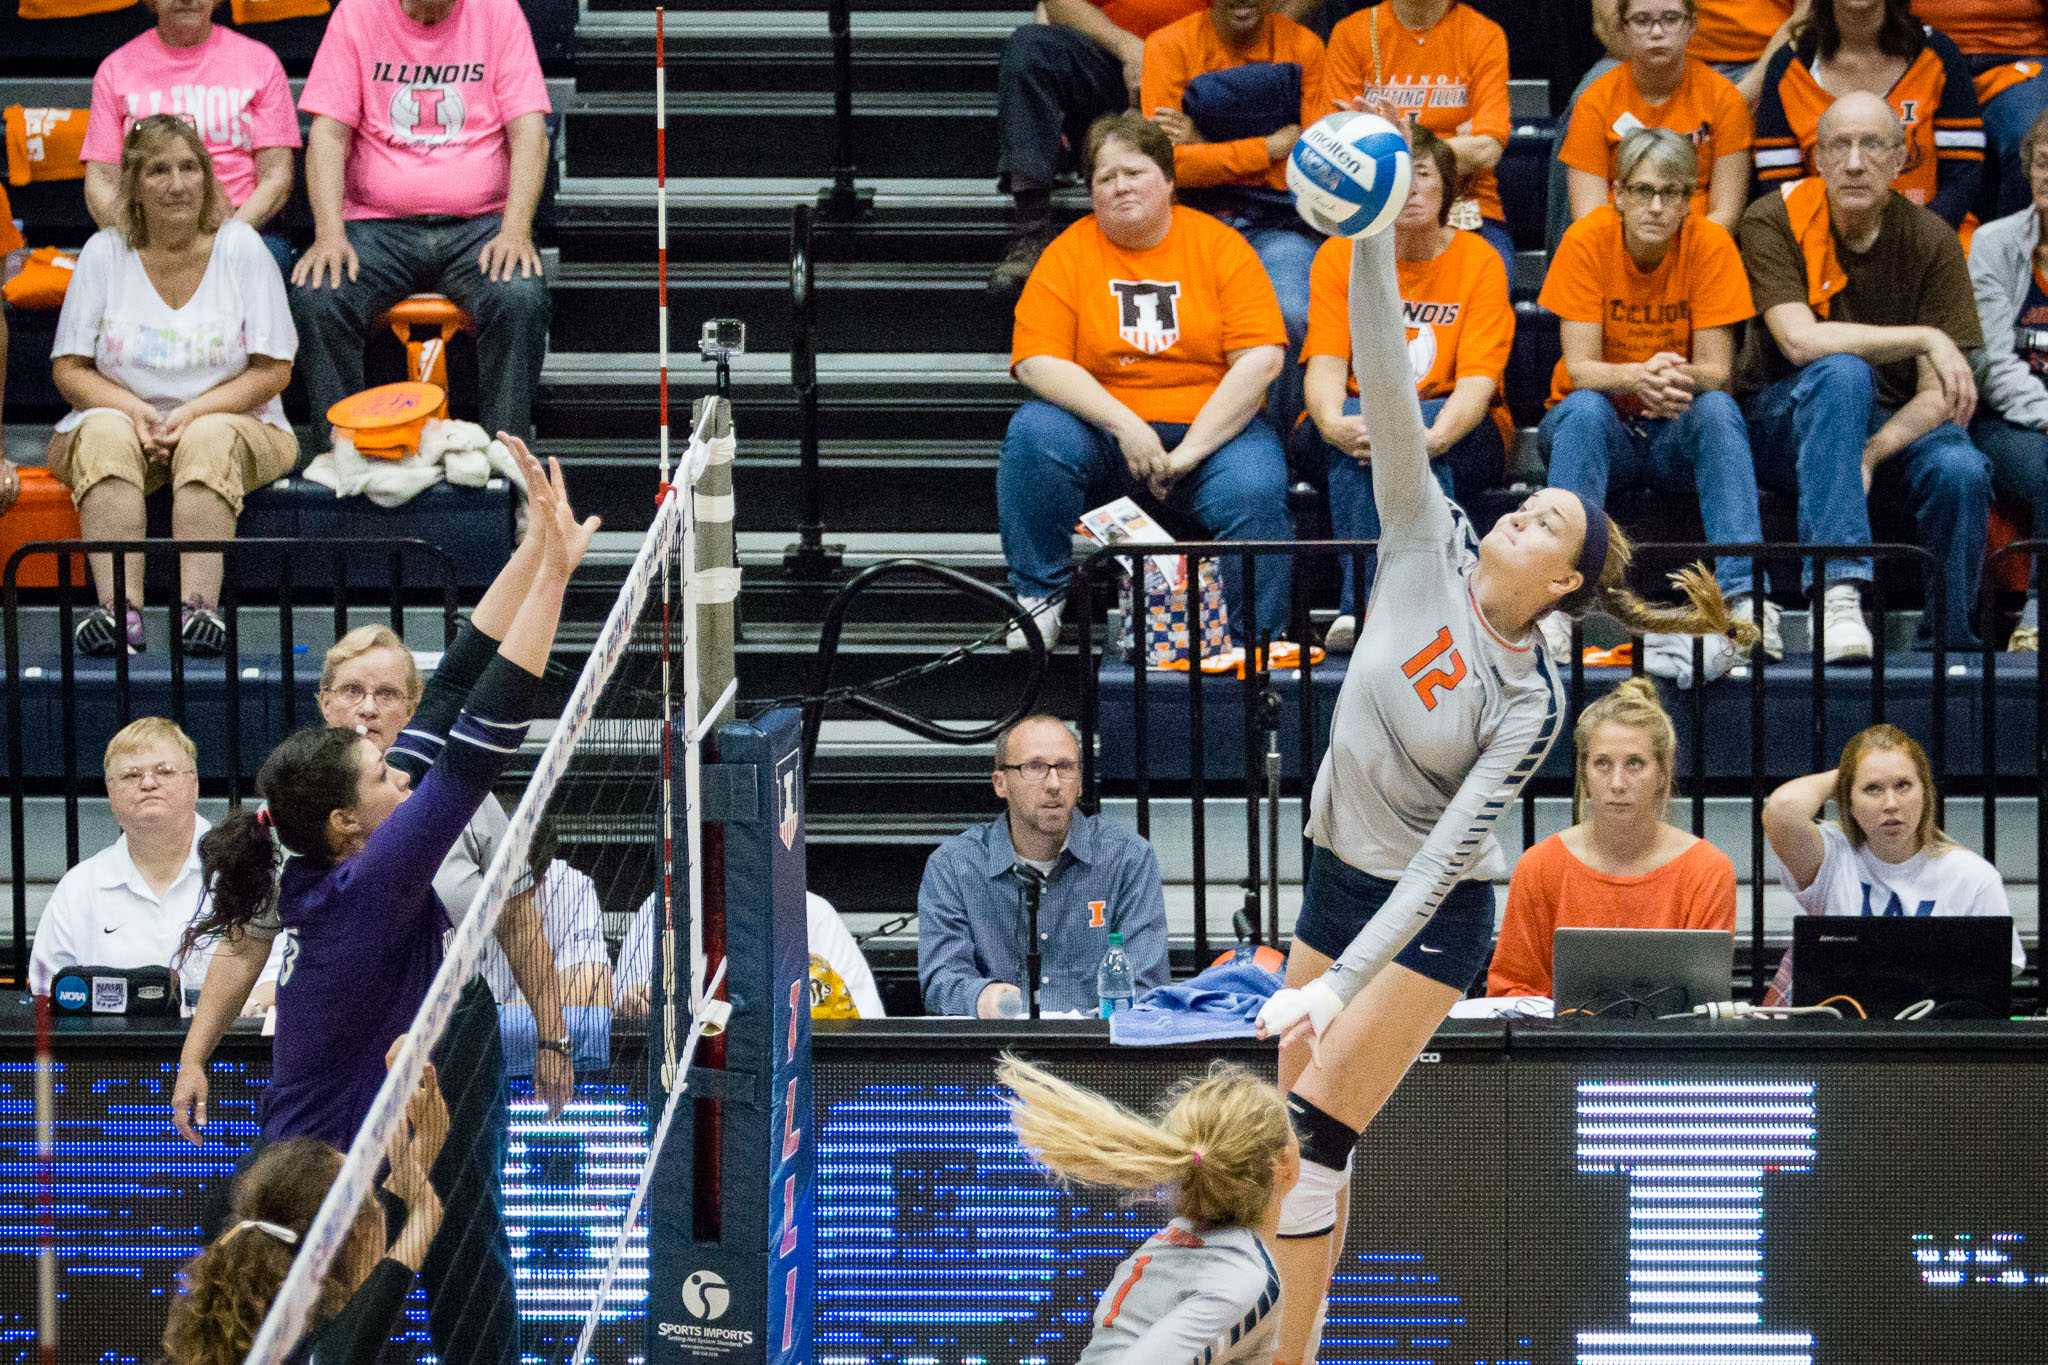 Illinois' Katie Stadick hits the ball during the match against Northwestern at Huff Hall on Saturday, October 15. The Illini won 3-0.